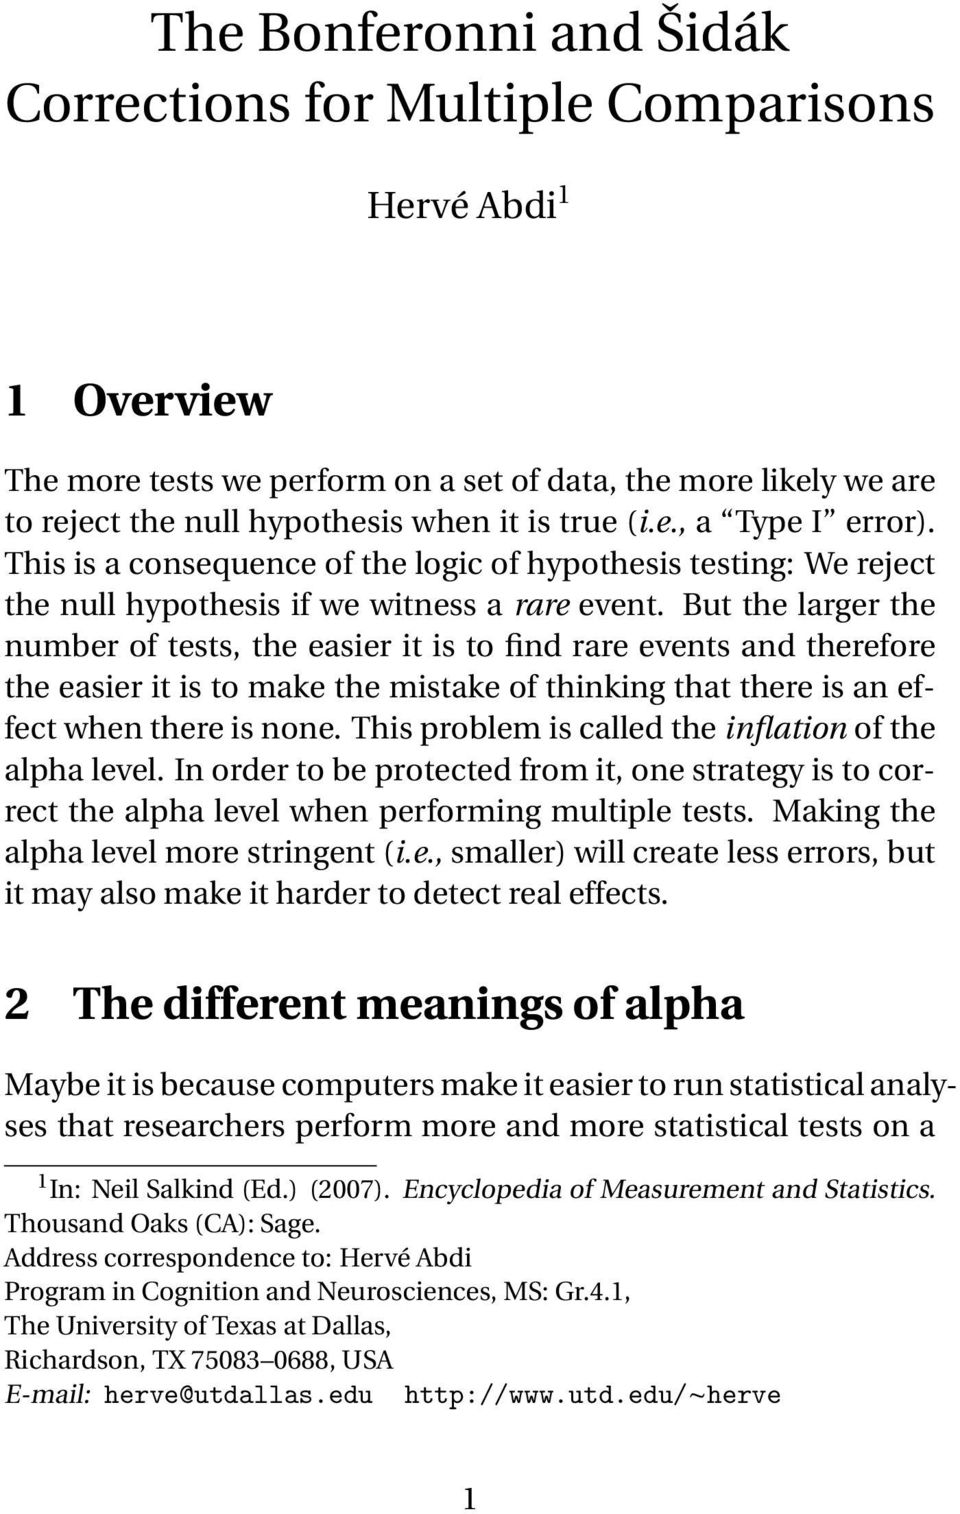 But the larger the number of tests, the easier it is to find rare events and therefore the easier it is to make the mistake of thinking that there is an effect when there is none.